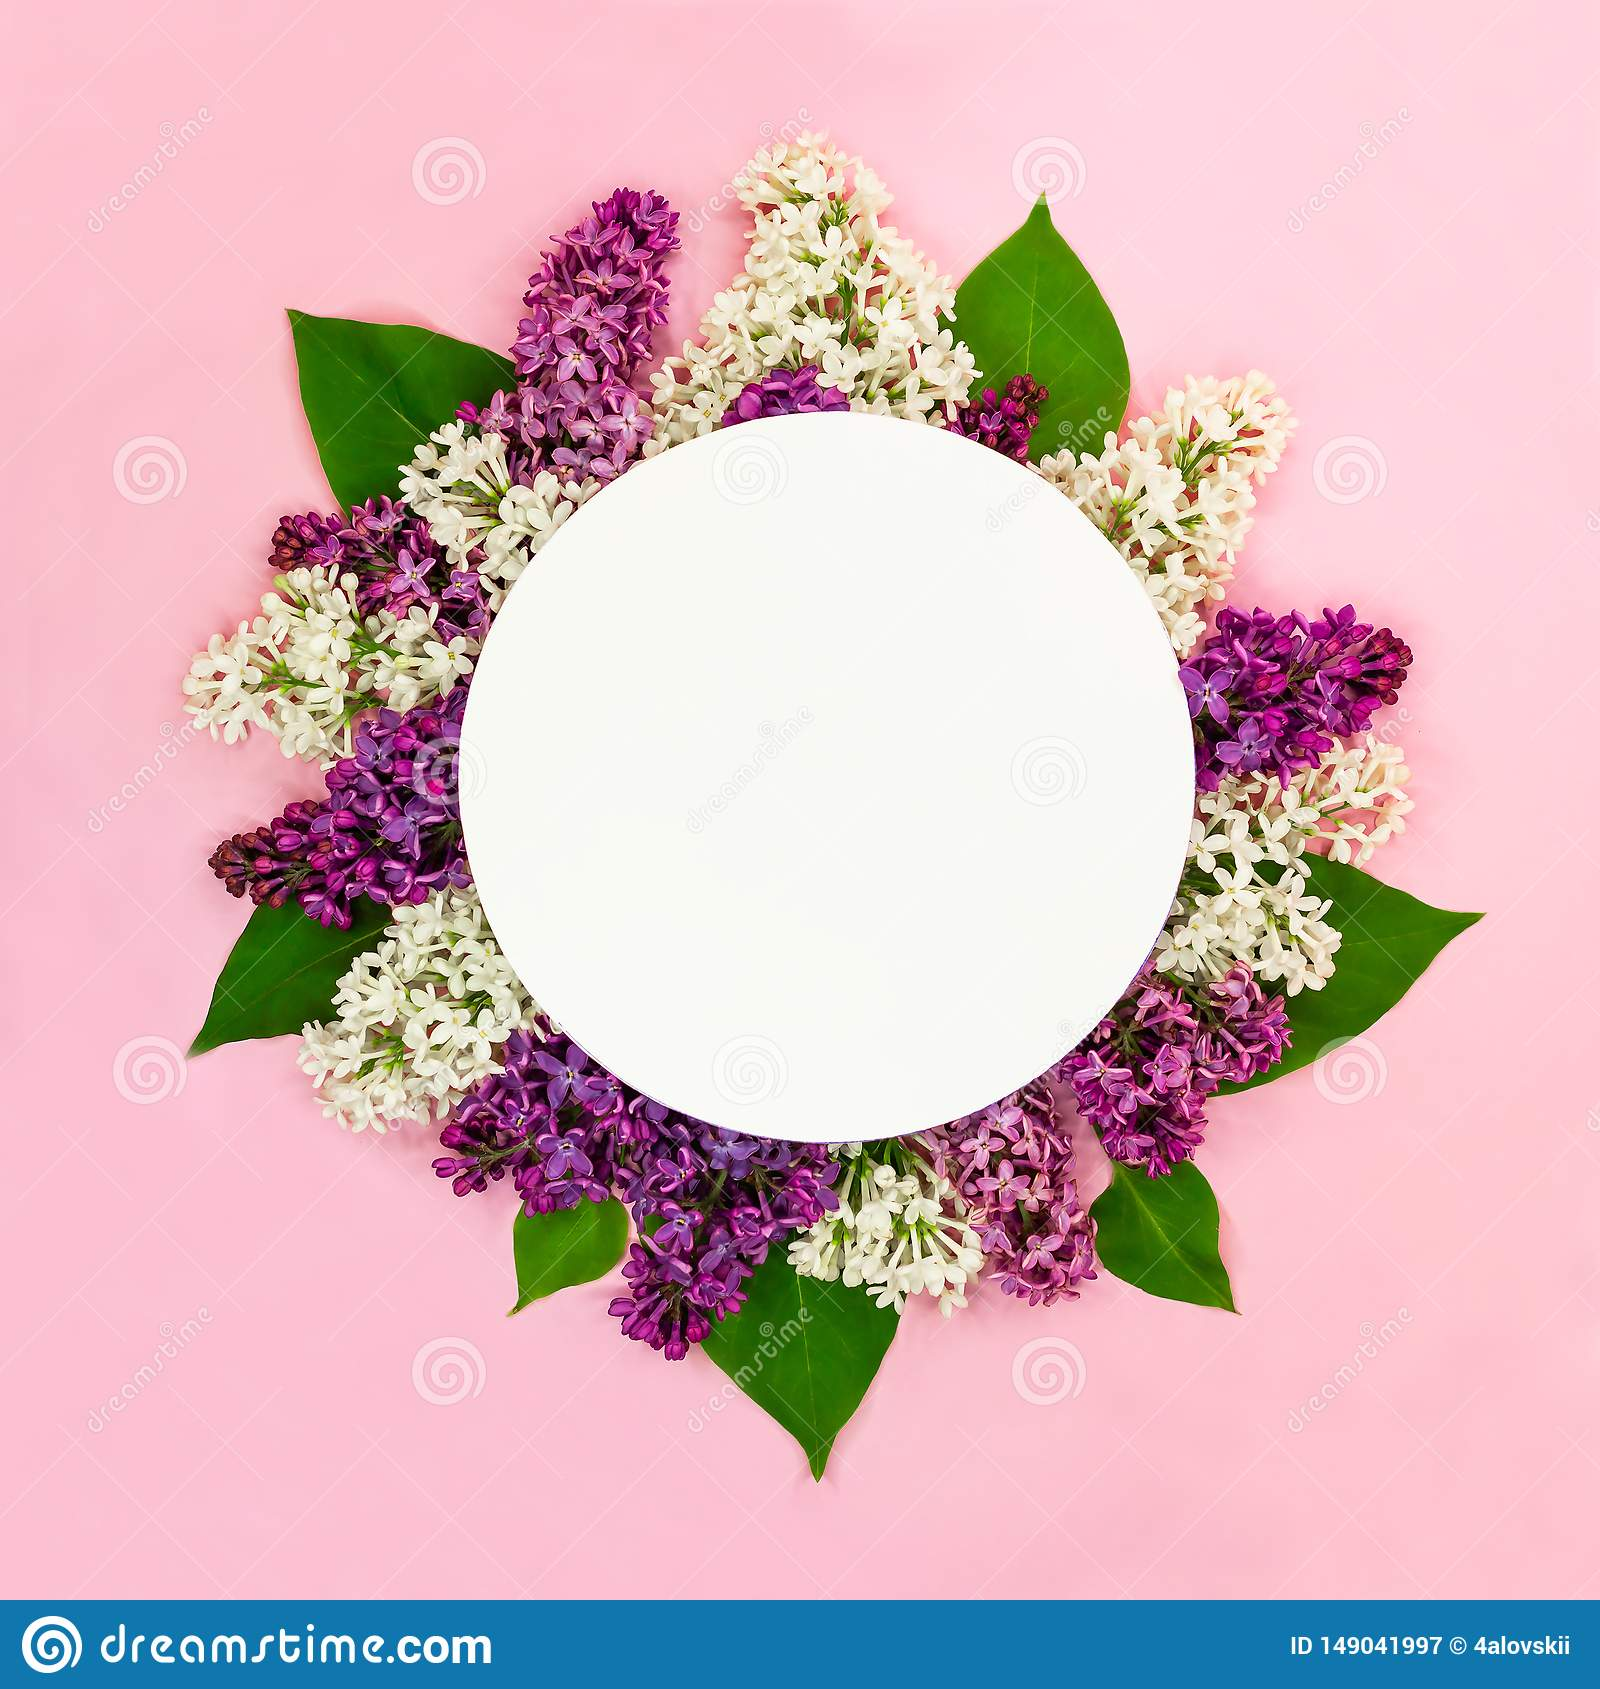 Beautiful round floral composition of white, purple lilac flowers with empty card and place for text on pink background. Summer